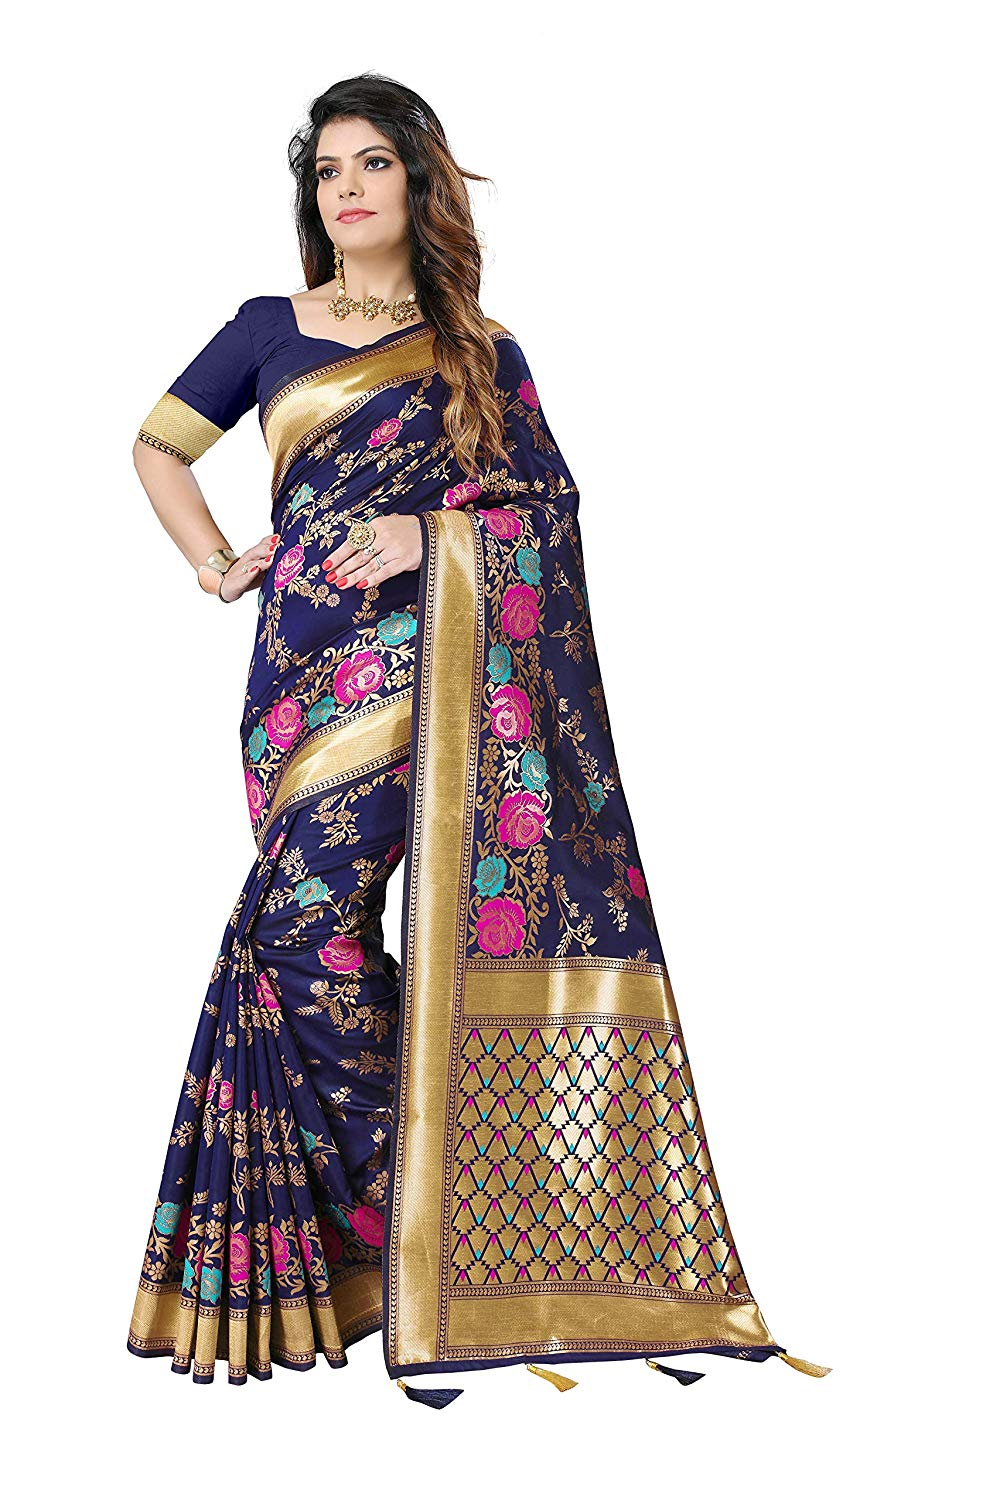 Silky Sarees Women's Banarasi Silk Saree with Blouse Piece